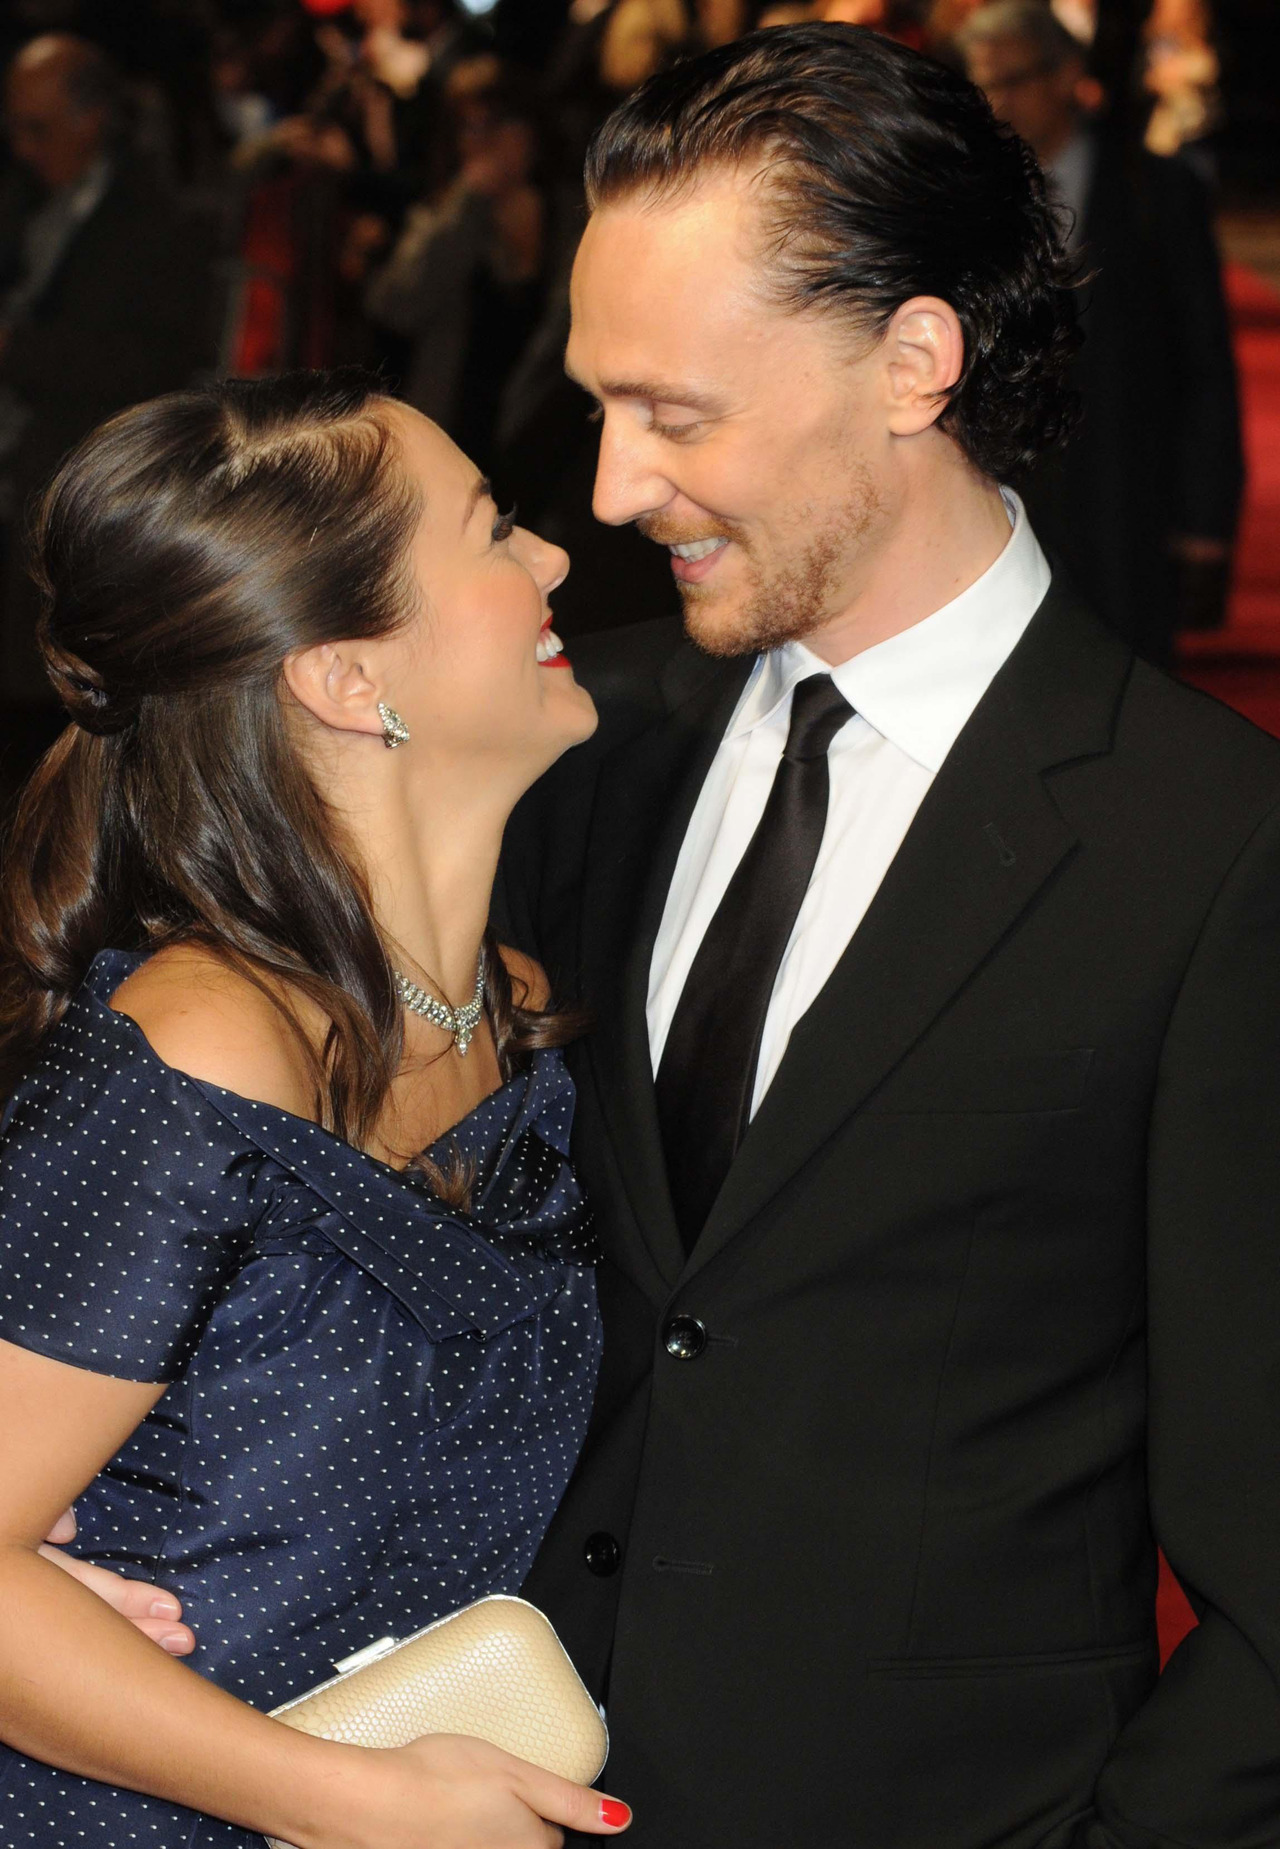 torrilla:  Tom Hiddleston and Susannah Fielding attend the premiere of 'The Deep Blue Sea' at the closing night of The 55th BFI London Film Festival at Odeon Leicester Square on October 27, 2011 in London, England [HQ]